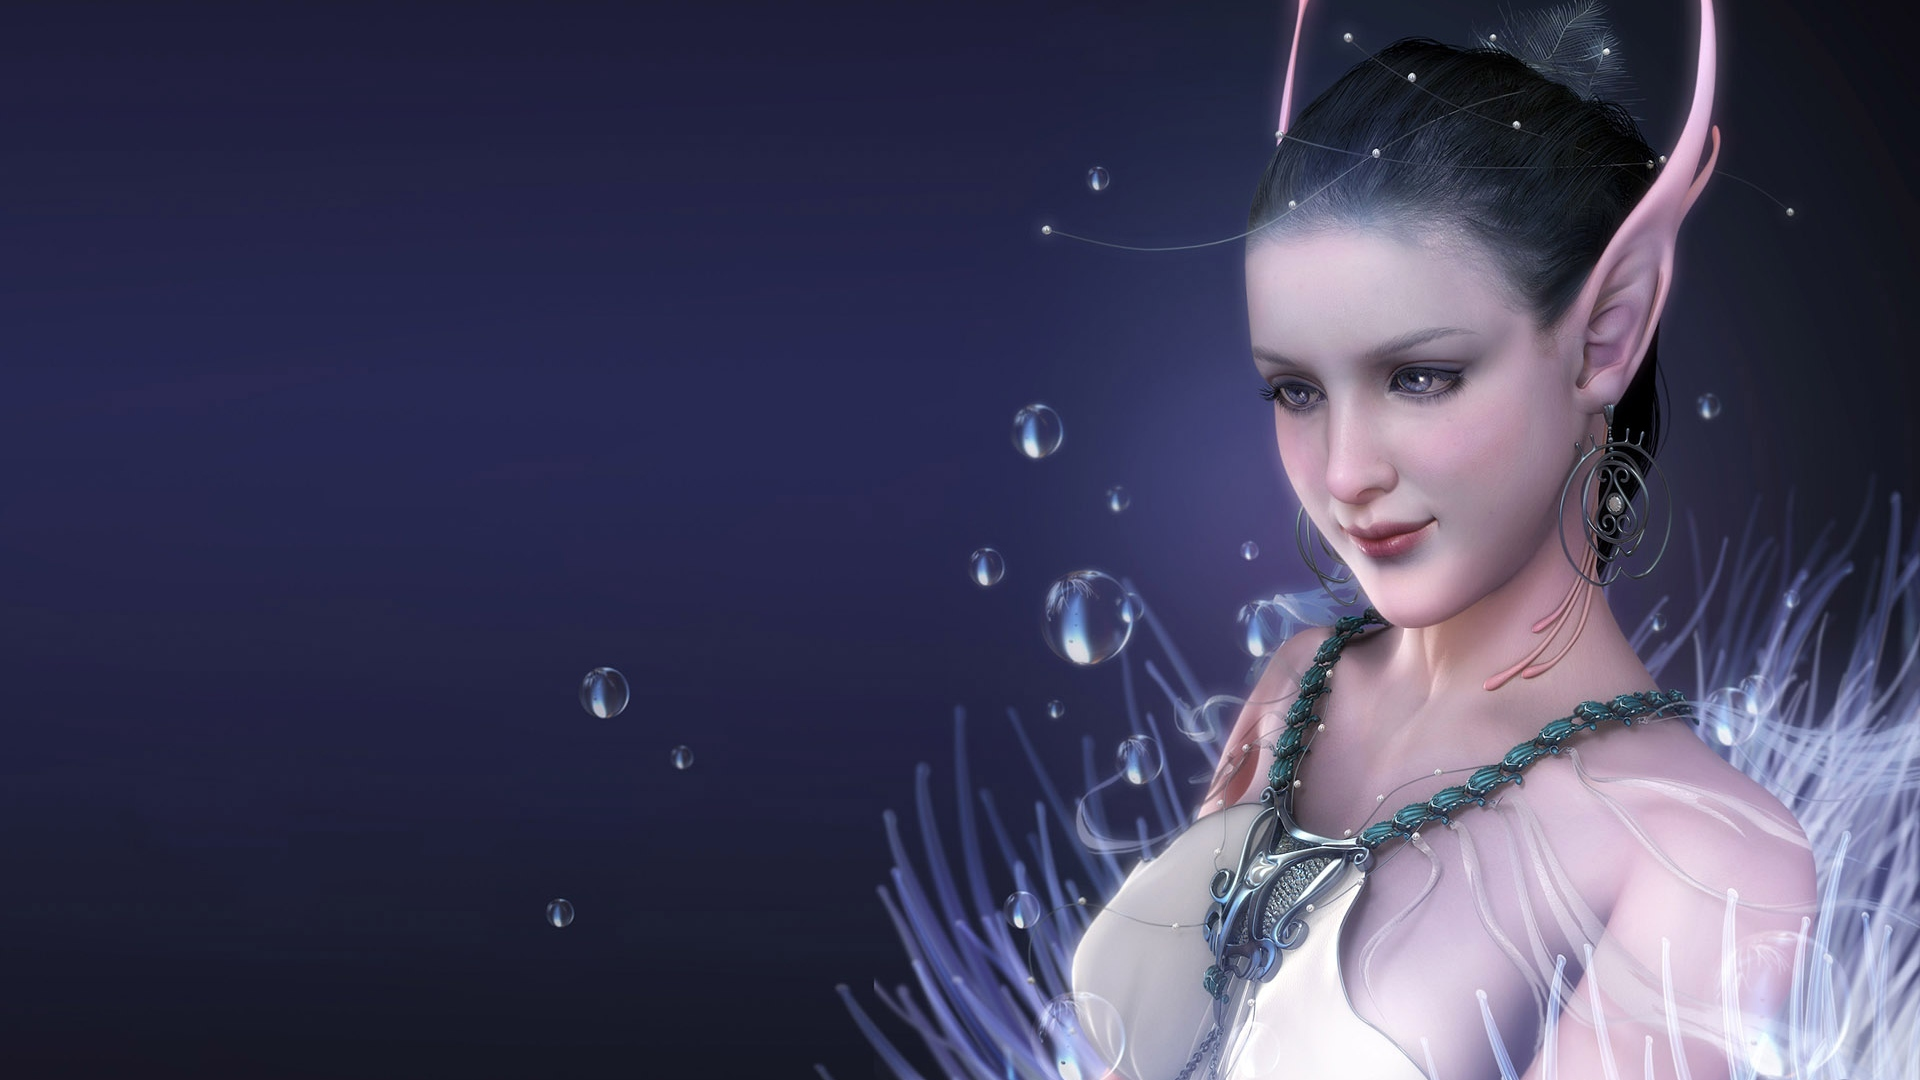 girl-elf-ears-water-dark-blue-1920x1080